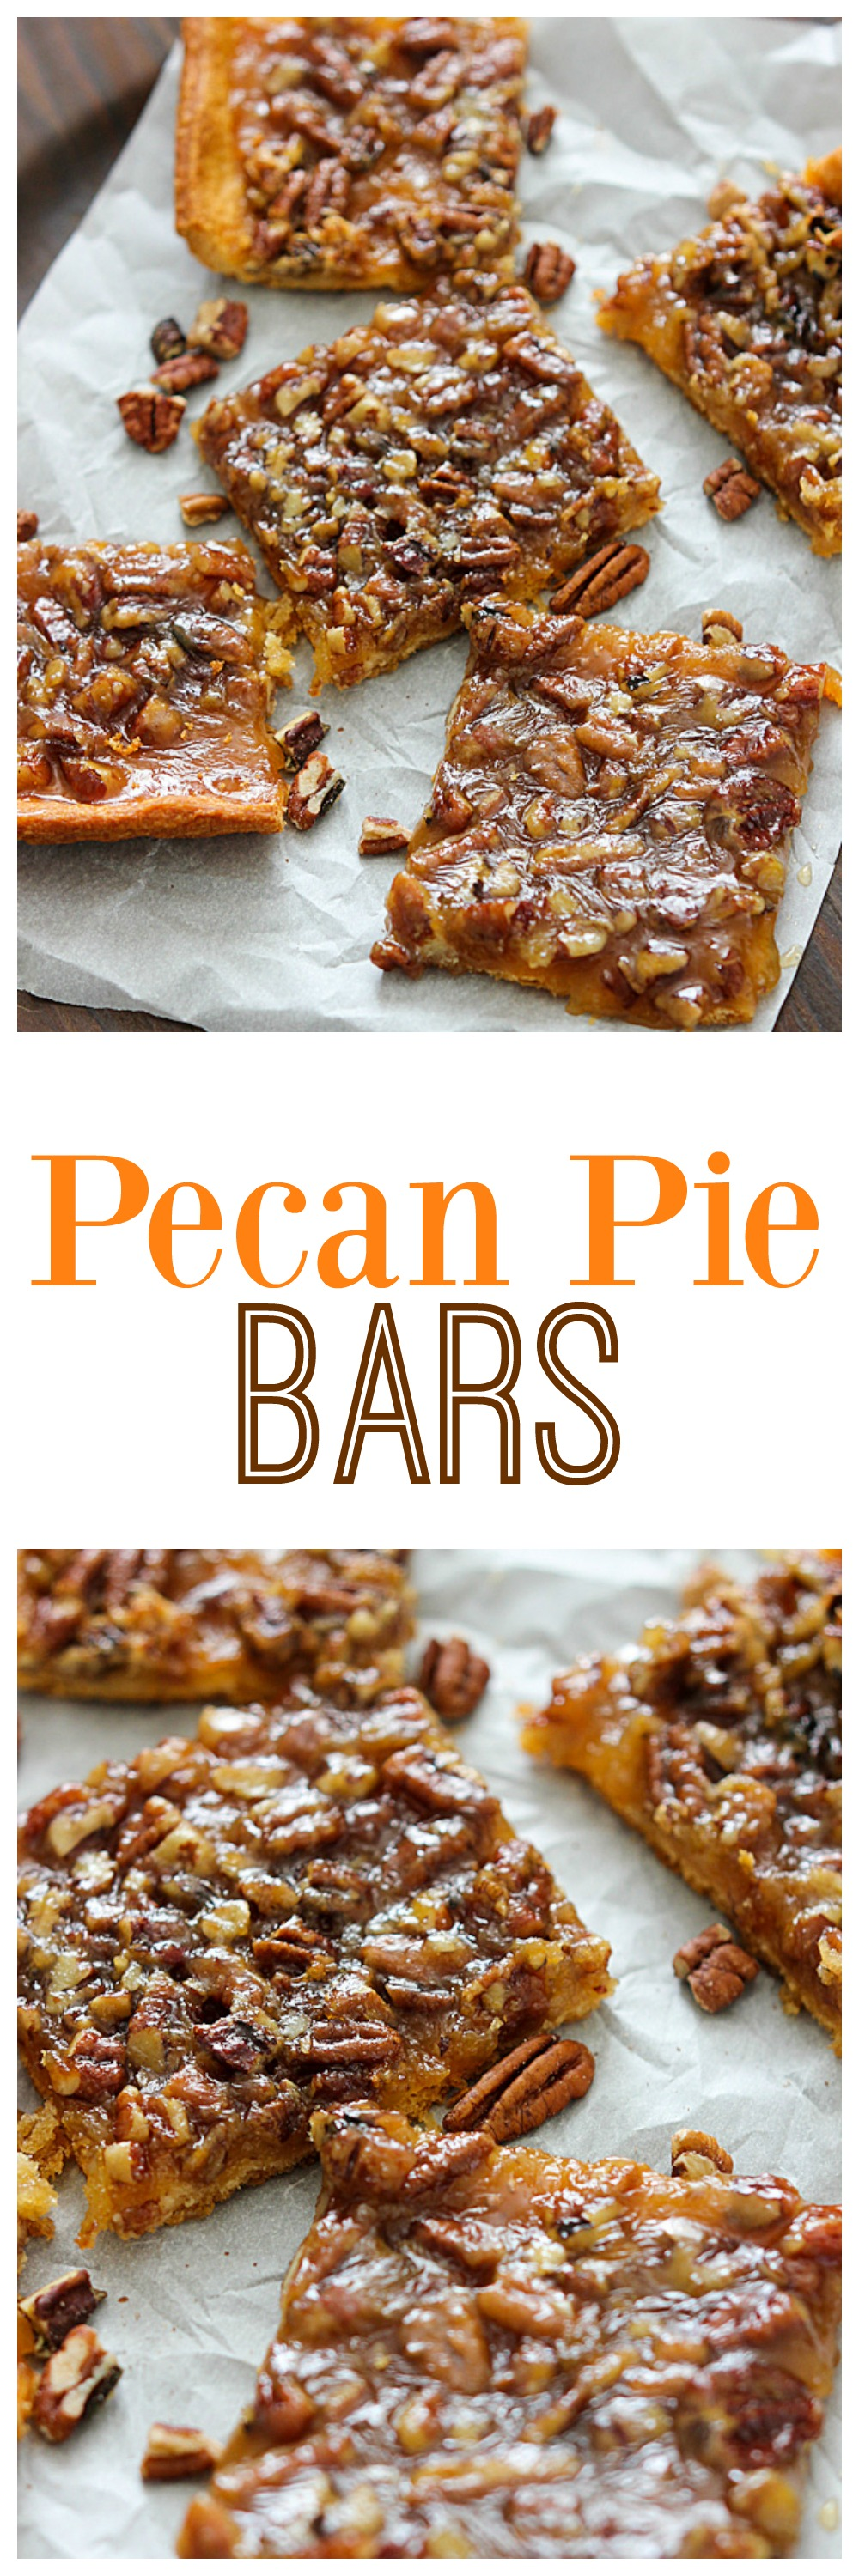 pecan-pie-bars-collage